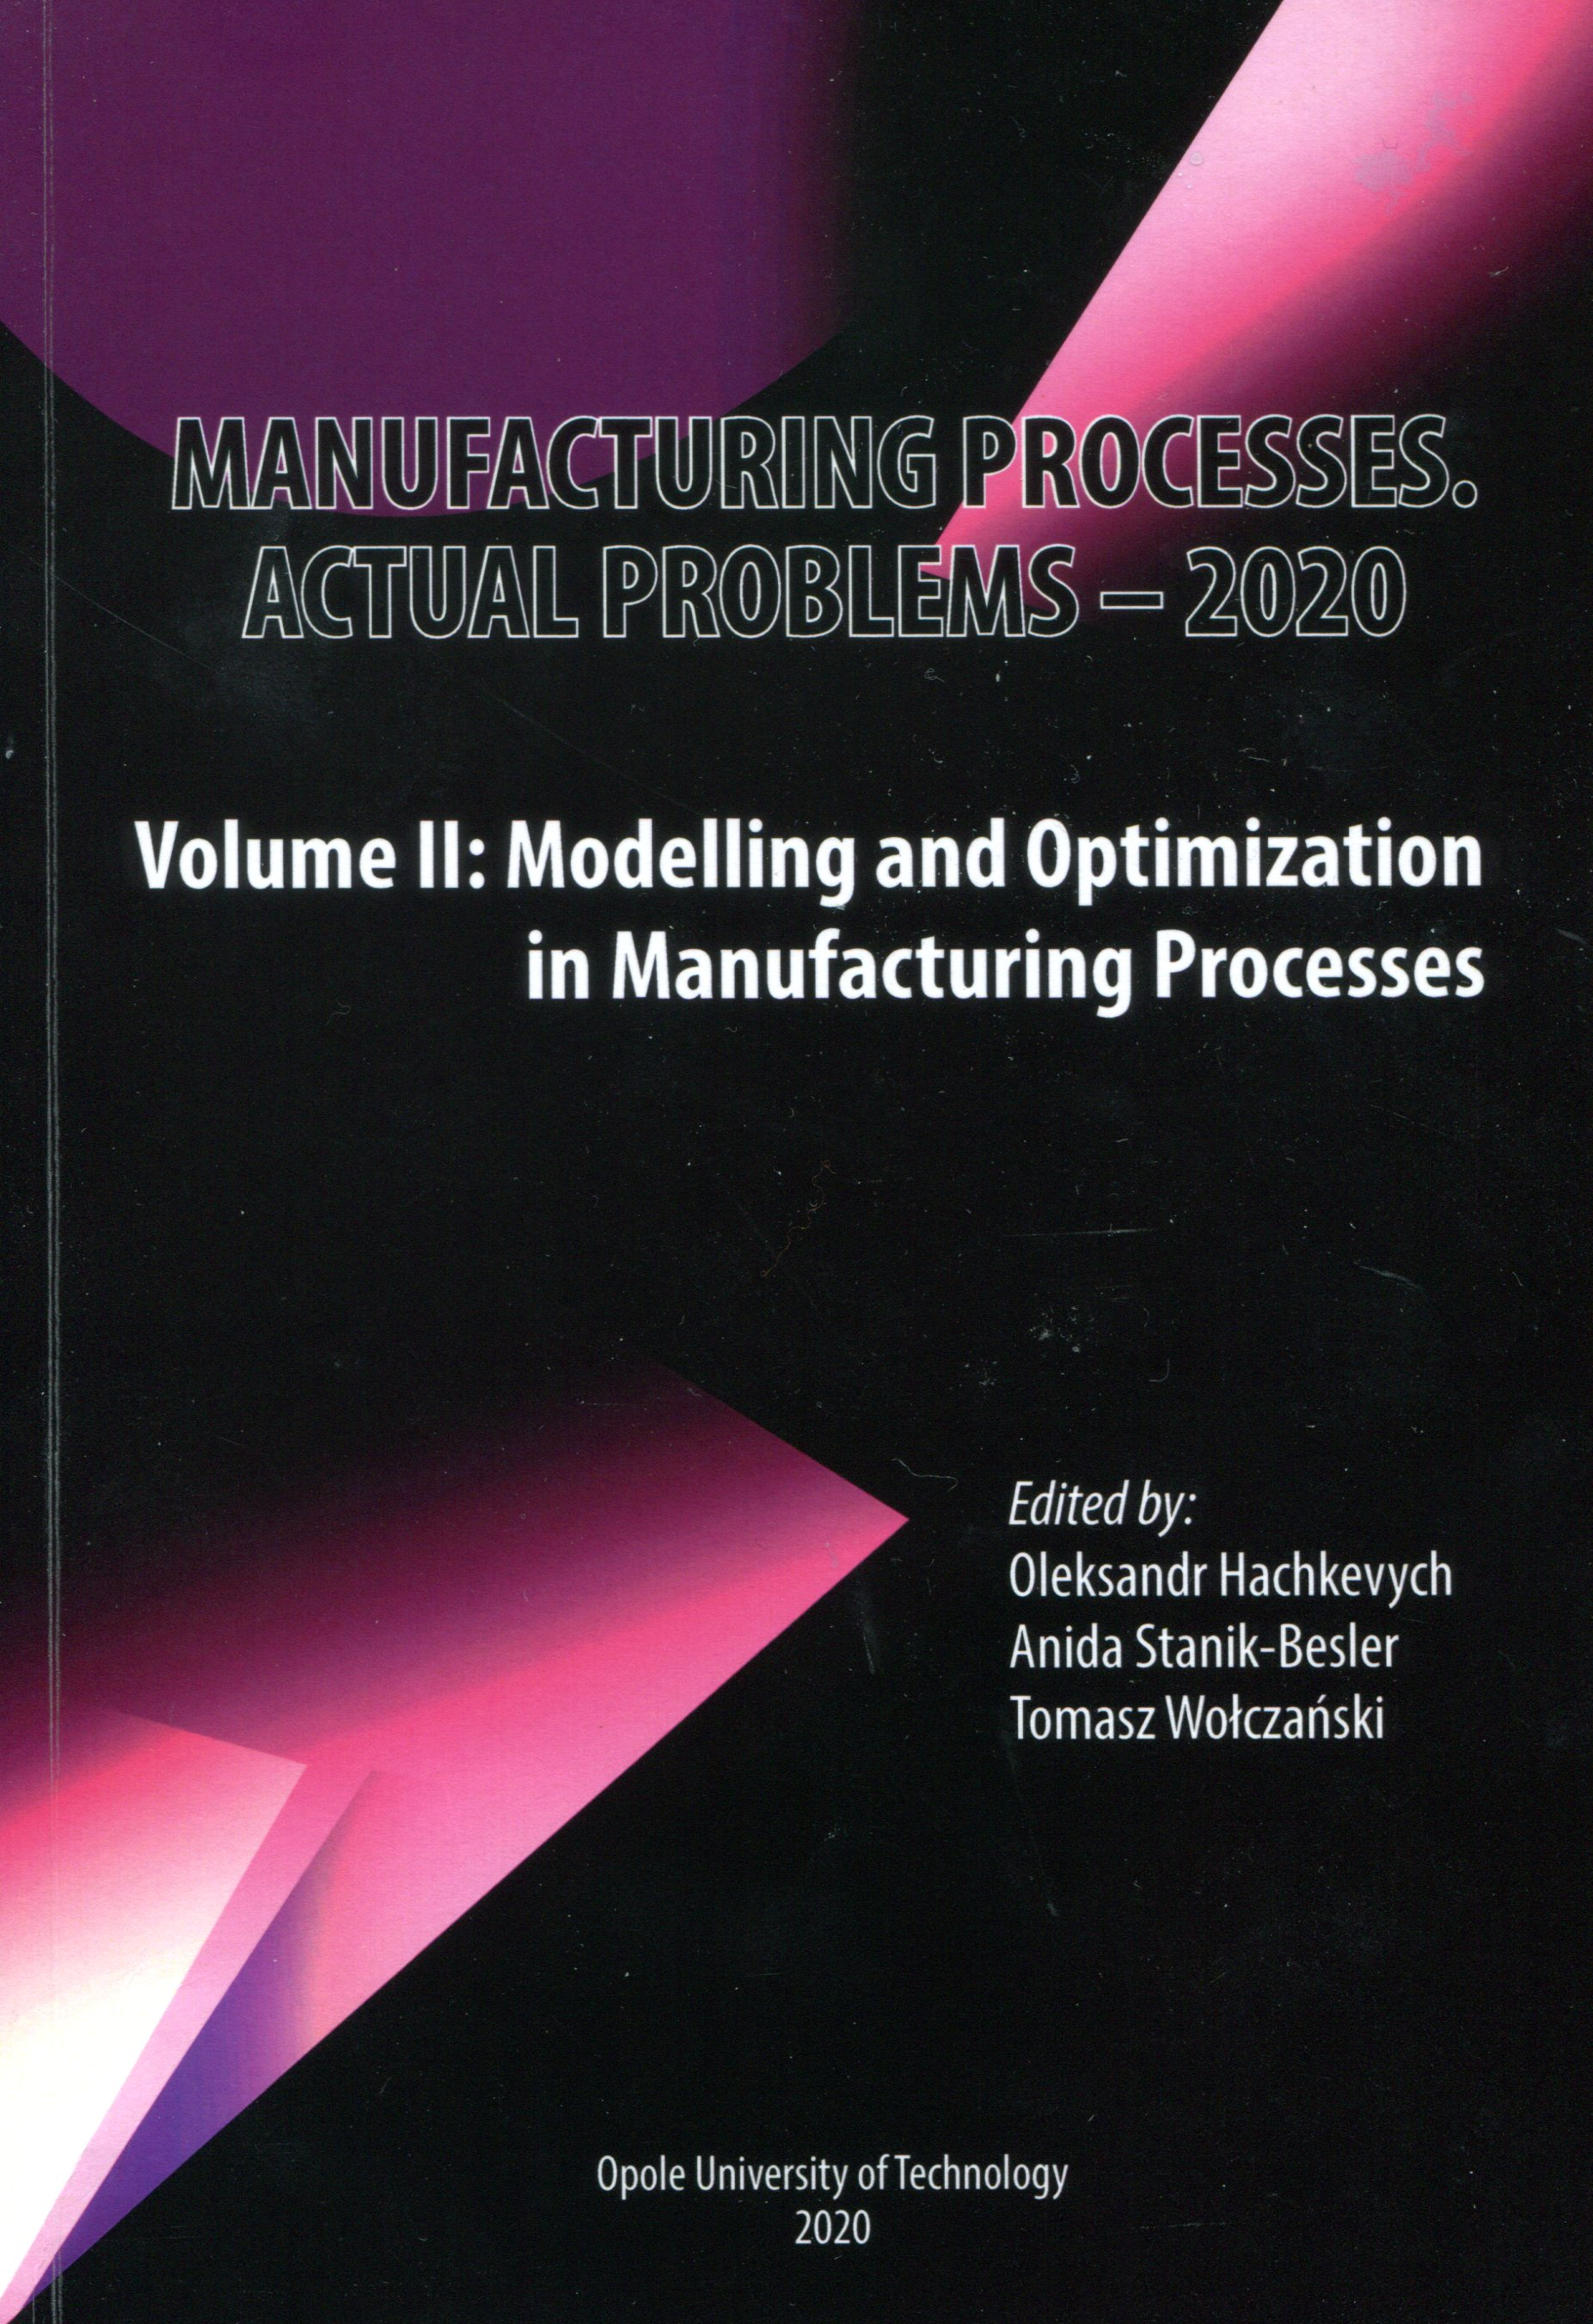 Manufacturing processes : actual problems - 2020. Vol. 2, Modelling and optimization in manufacturing processes = T. 2, Modelirovanie i optimizaciâ proizvodstvennyh processov = T. 2, Modelowanie i optymalizacja procesów wytwórczych